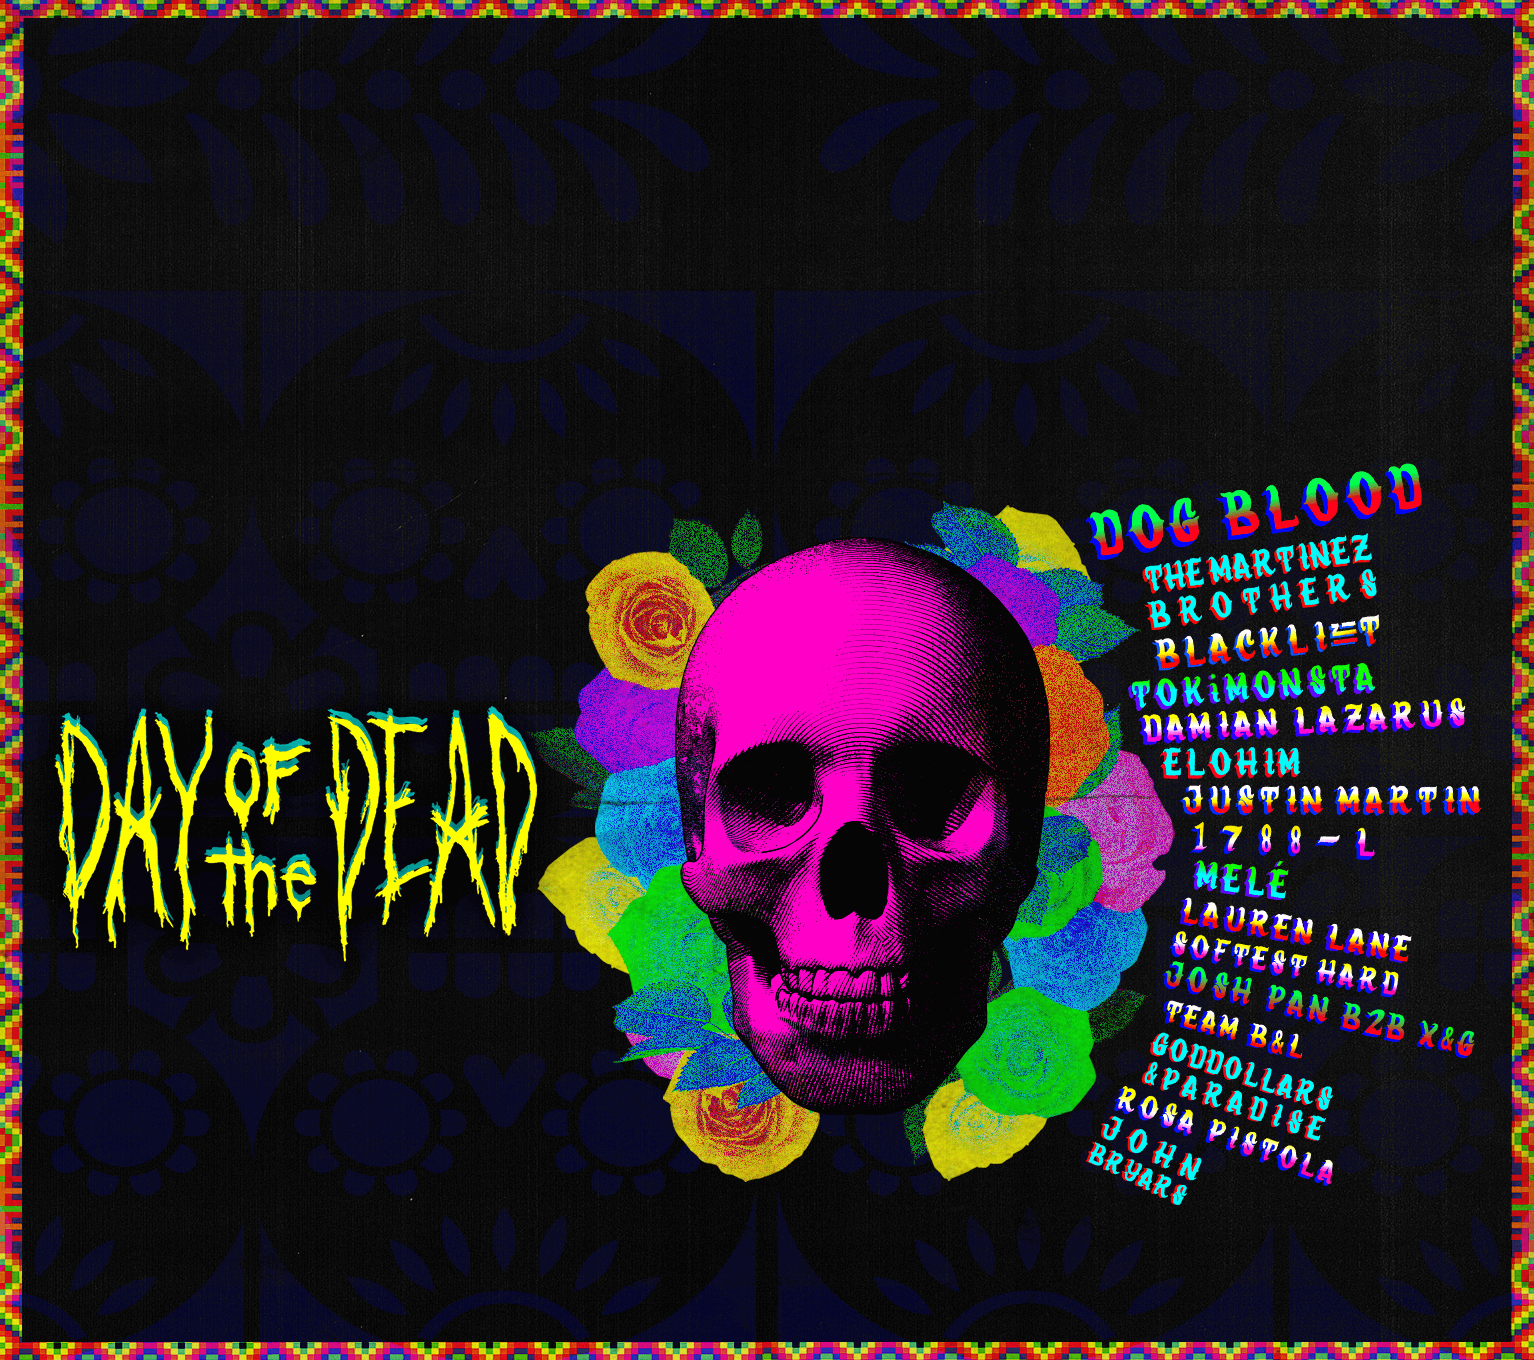 HARD Day of the Dead | November 2, 2019 | Los Angeles